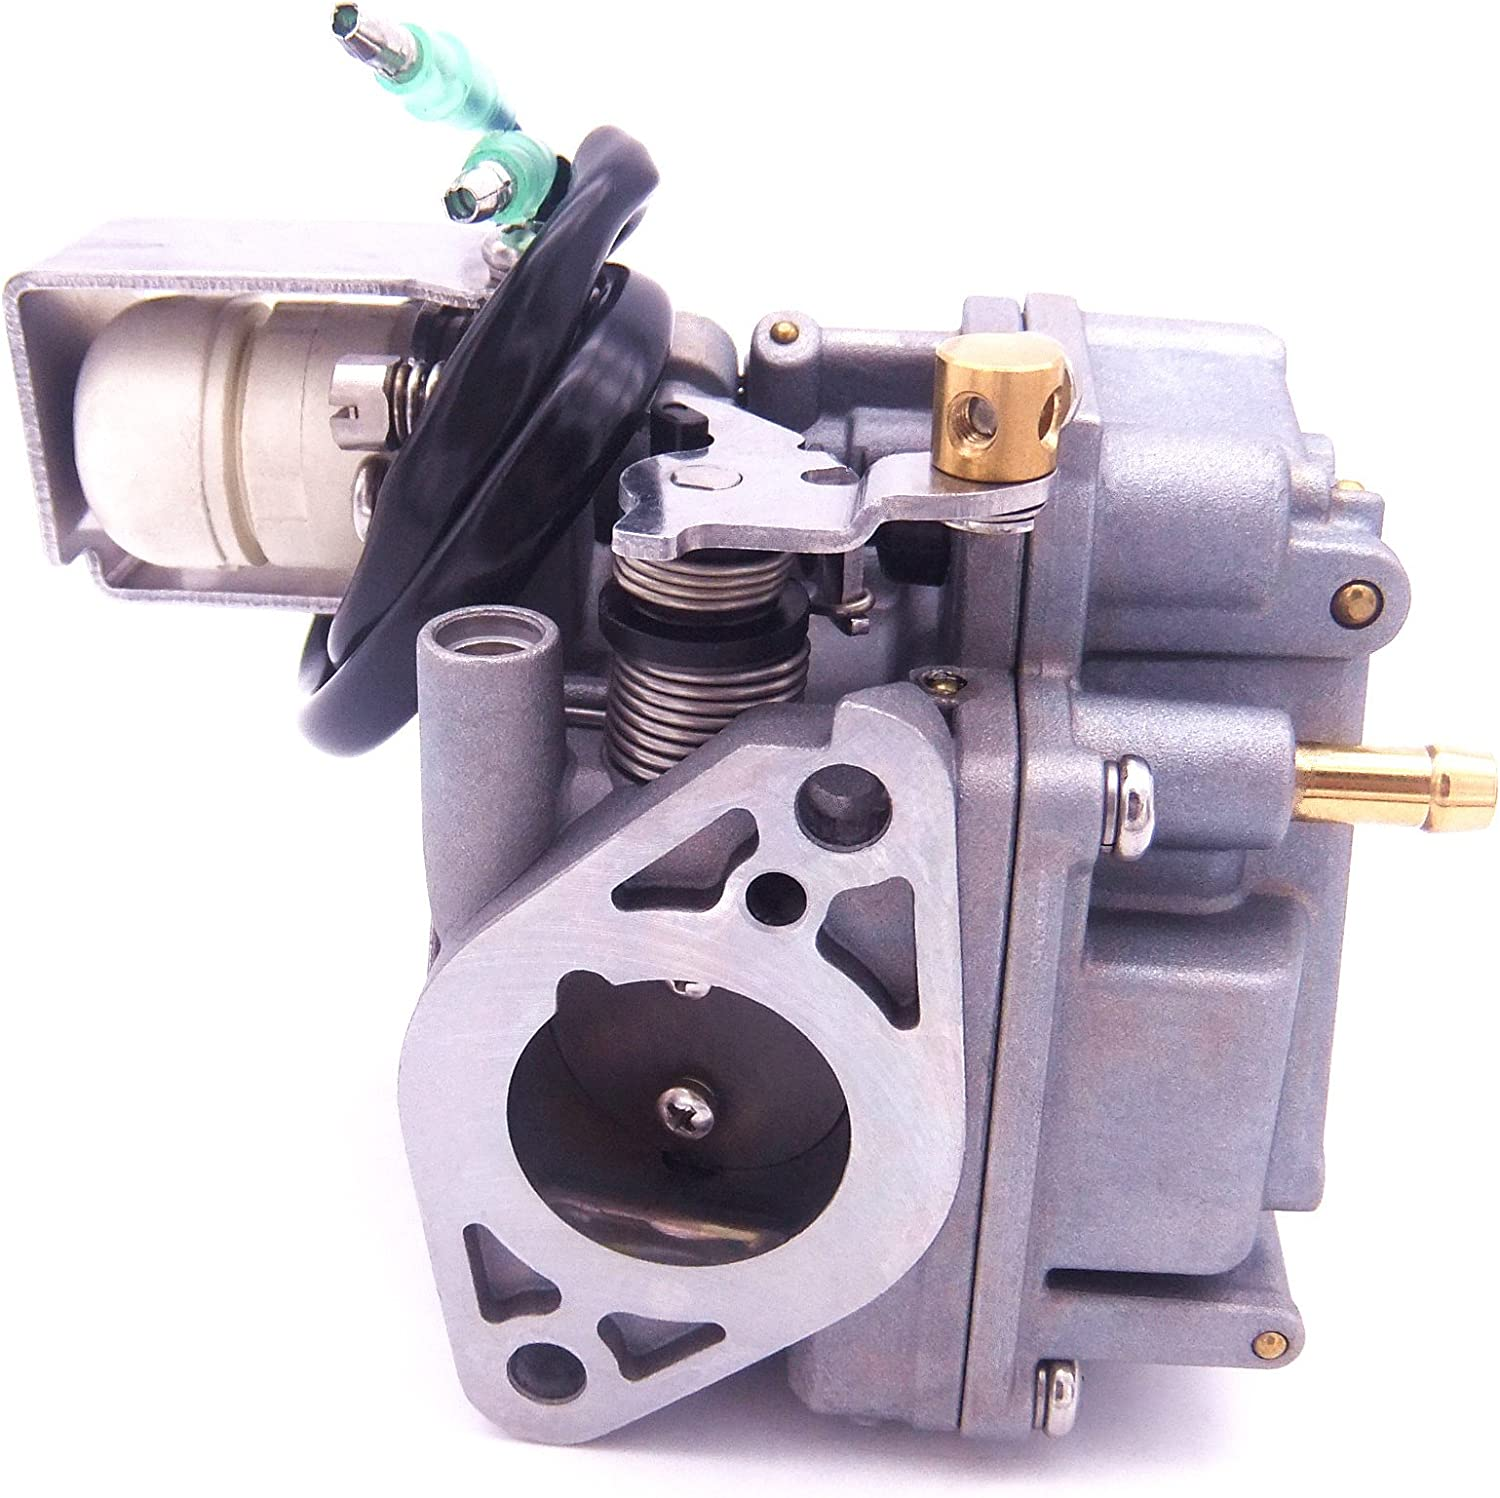 Carburetor Carb Assembly F25-05070000 for Yamaha Parsun Outboard F 25HP 4 stroke